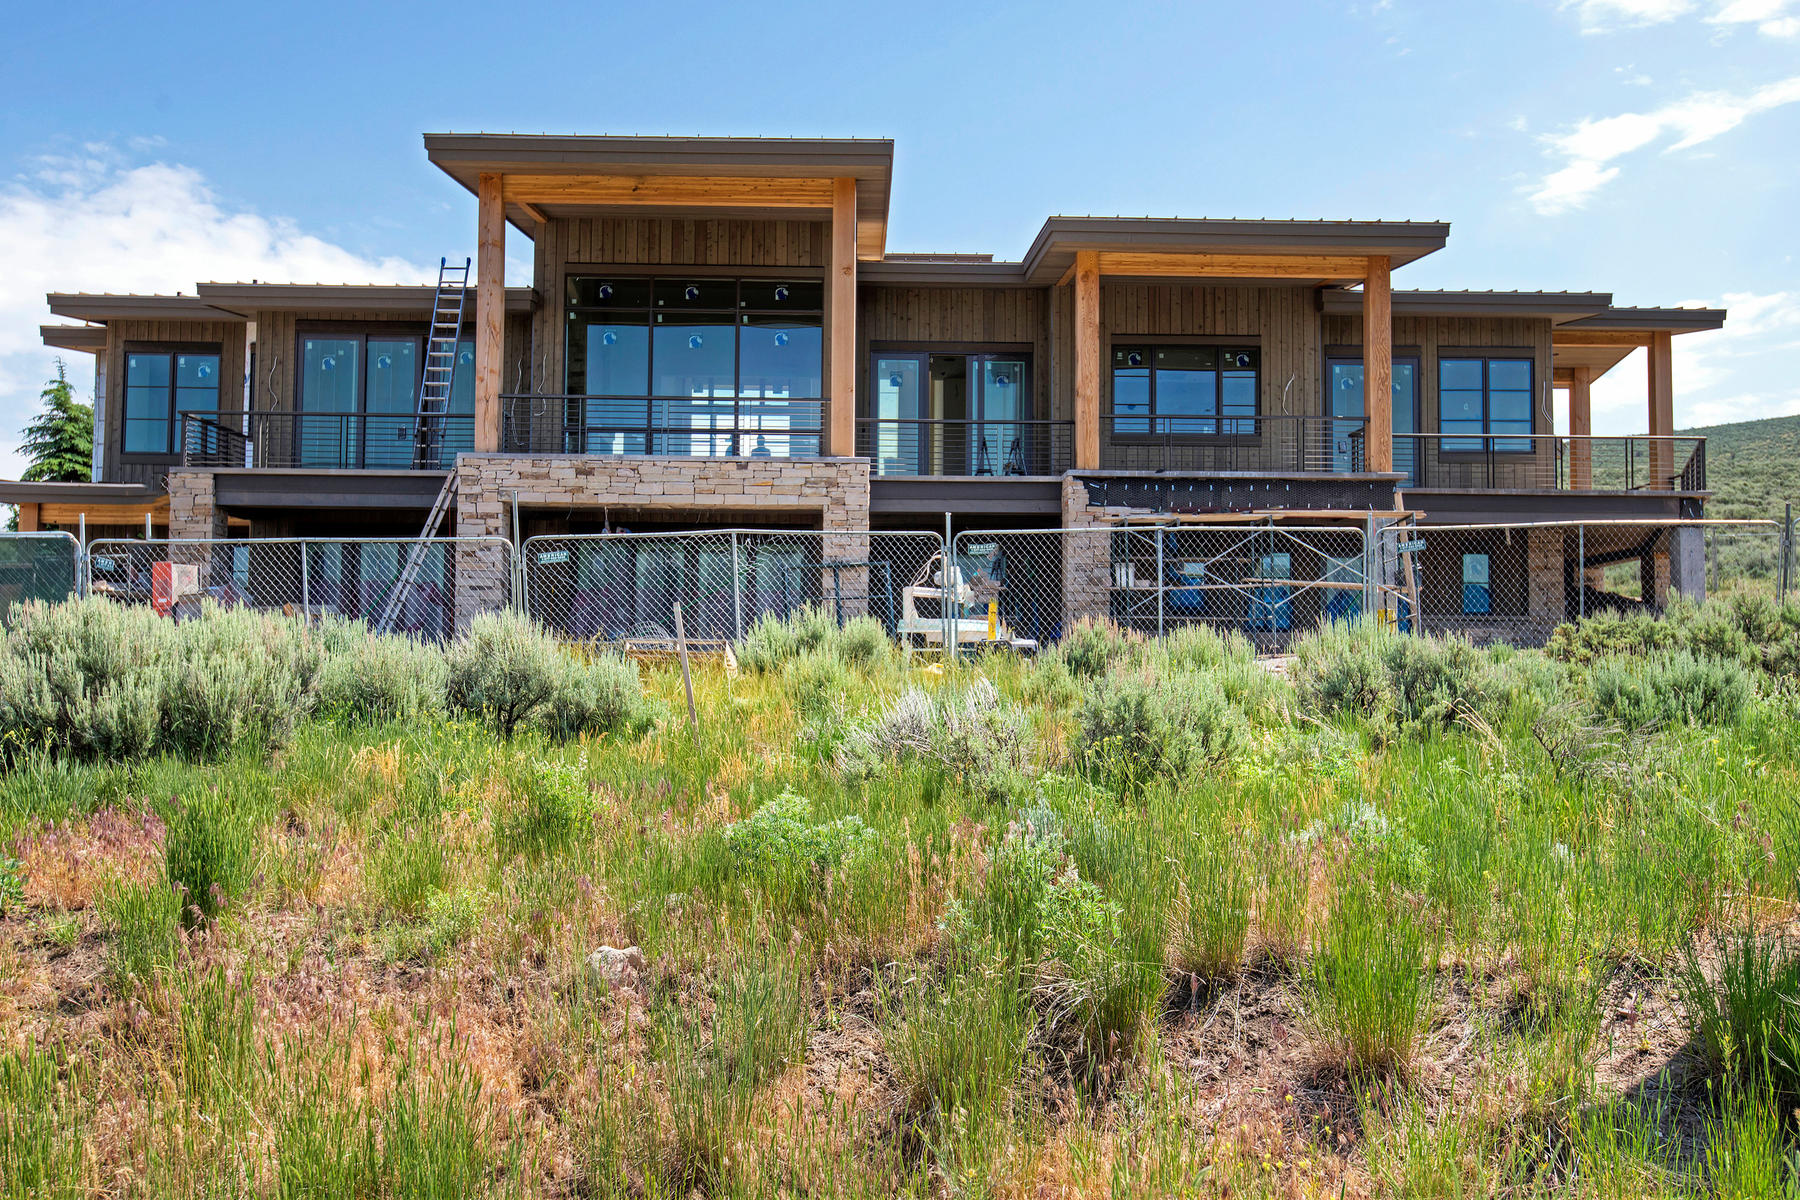 Tek Ailelik Ev için Satış at New Construction in the Desired Palisades Neighborhood in Promontory 6140 Dakota Trl Park City, Utah, 84098 Amerika Birleşik Devletleri